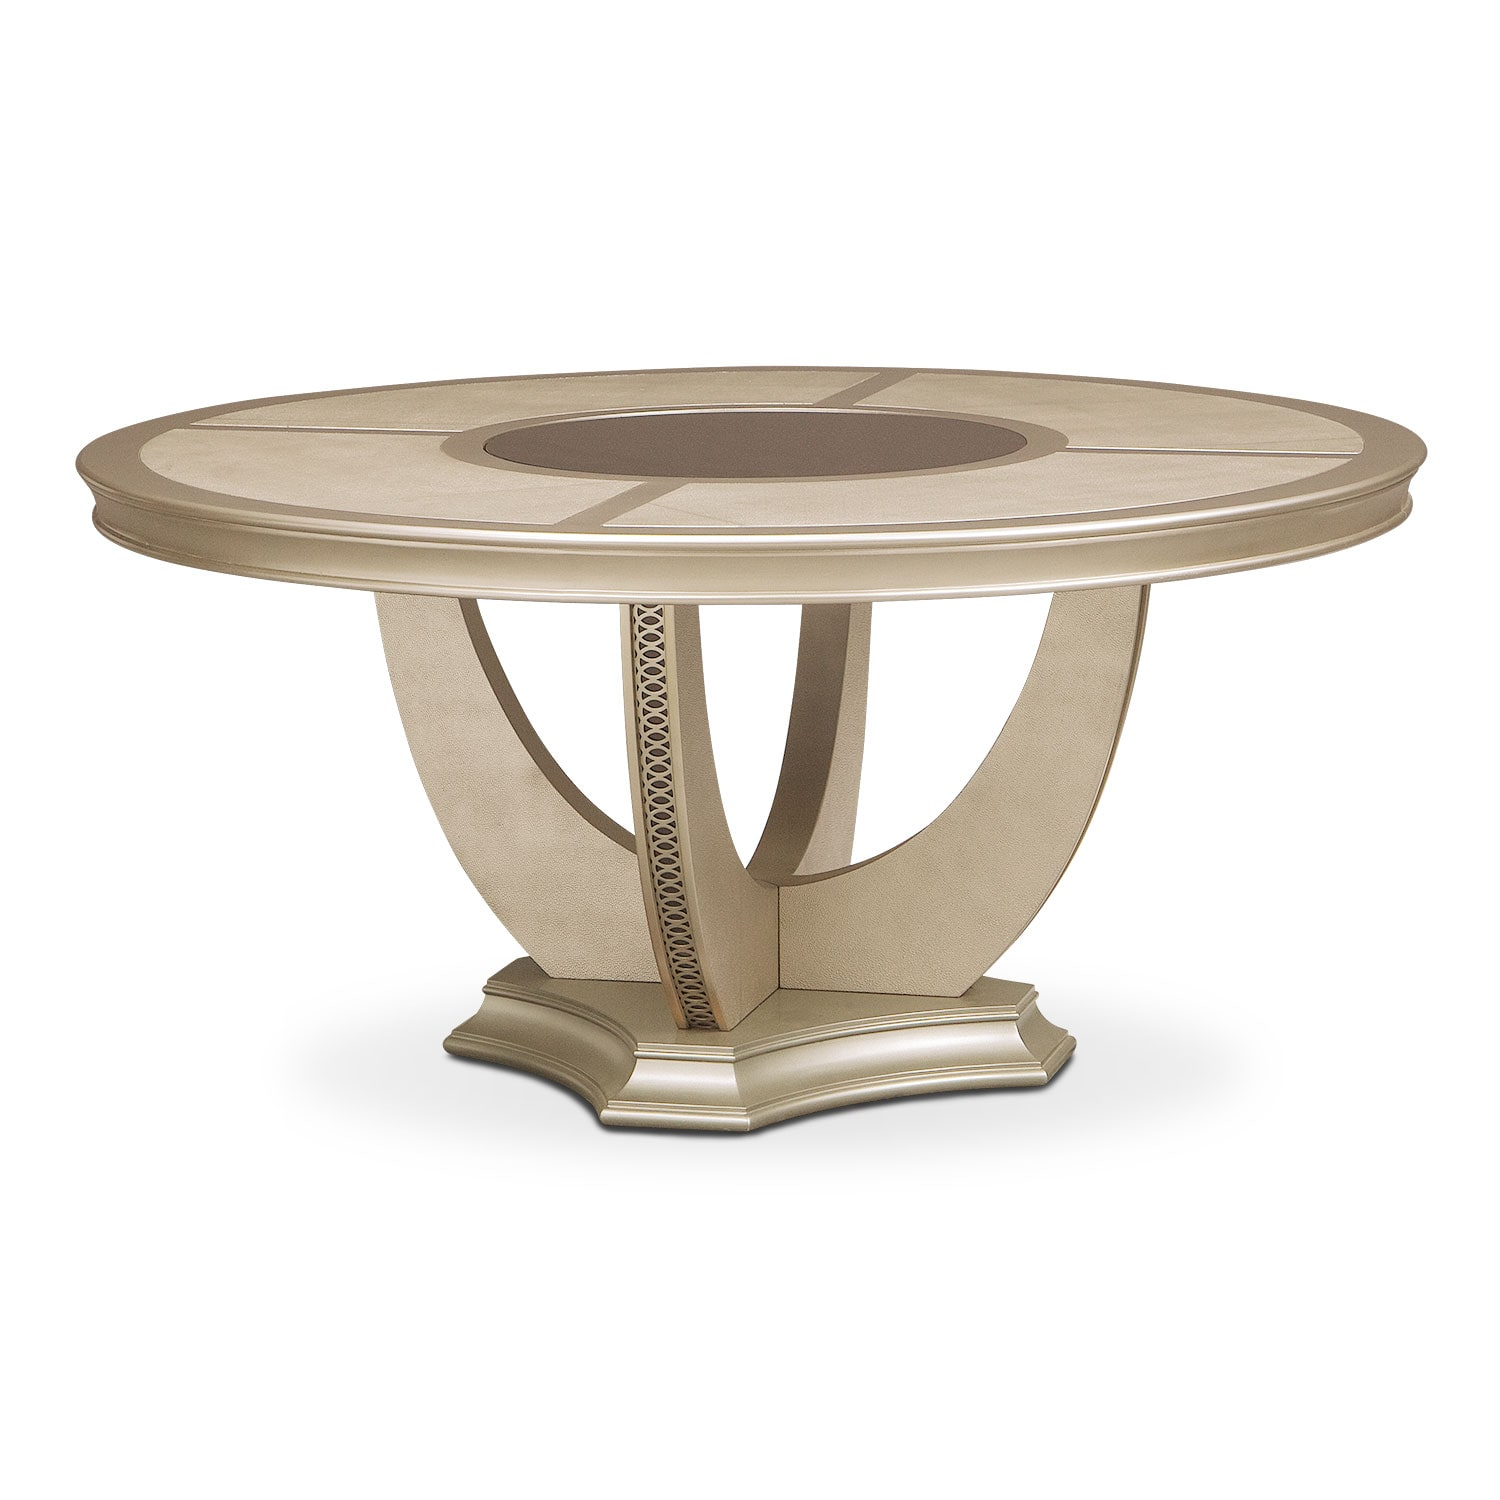 Allegro Round Dining Table - Platinum